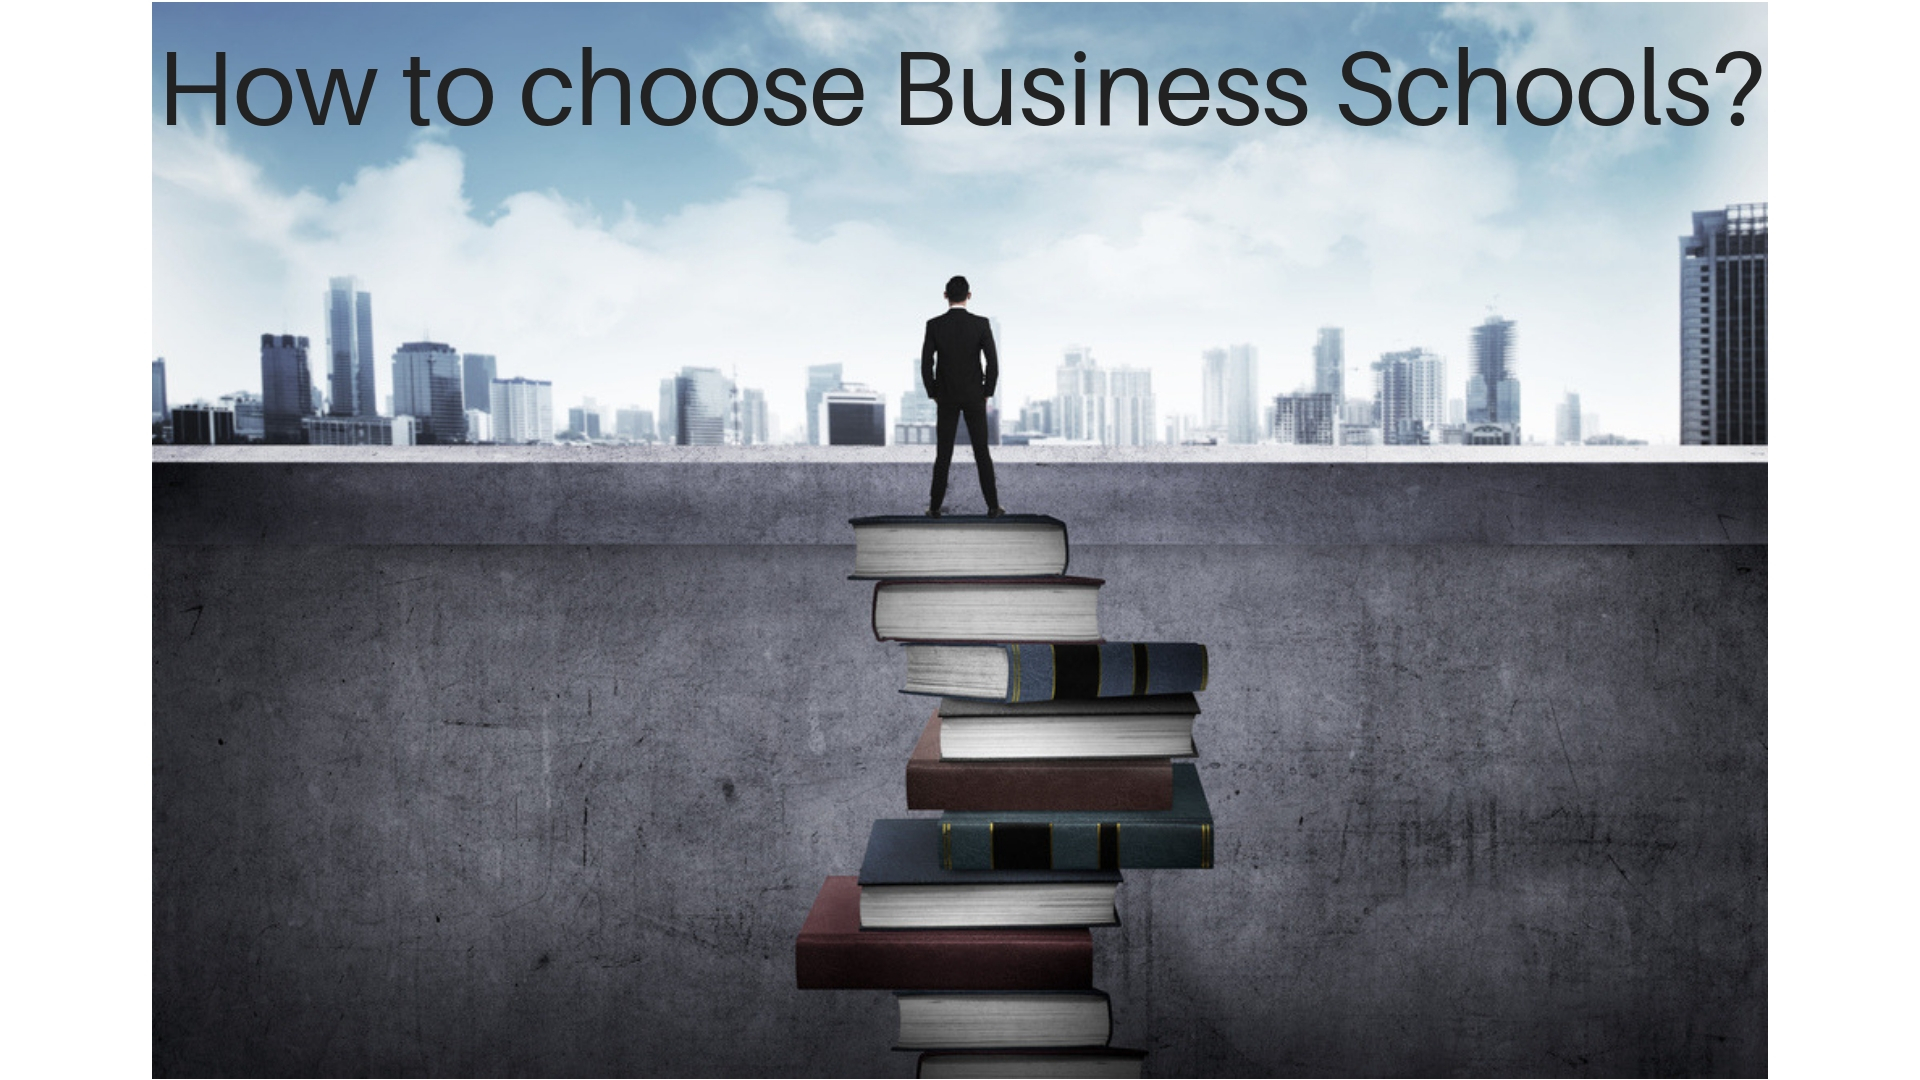 How to choose Business Schools